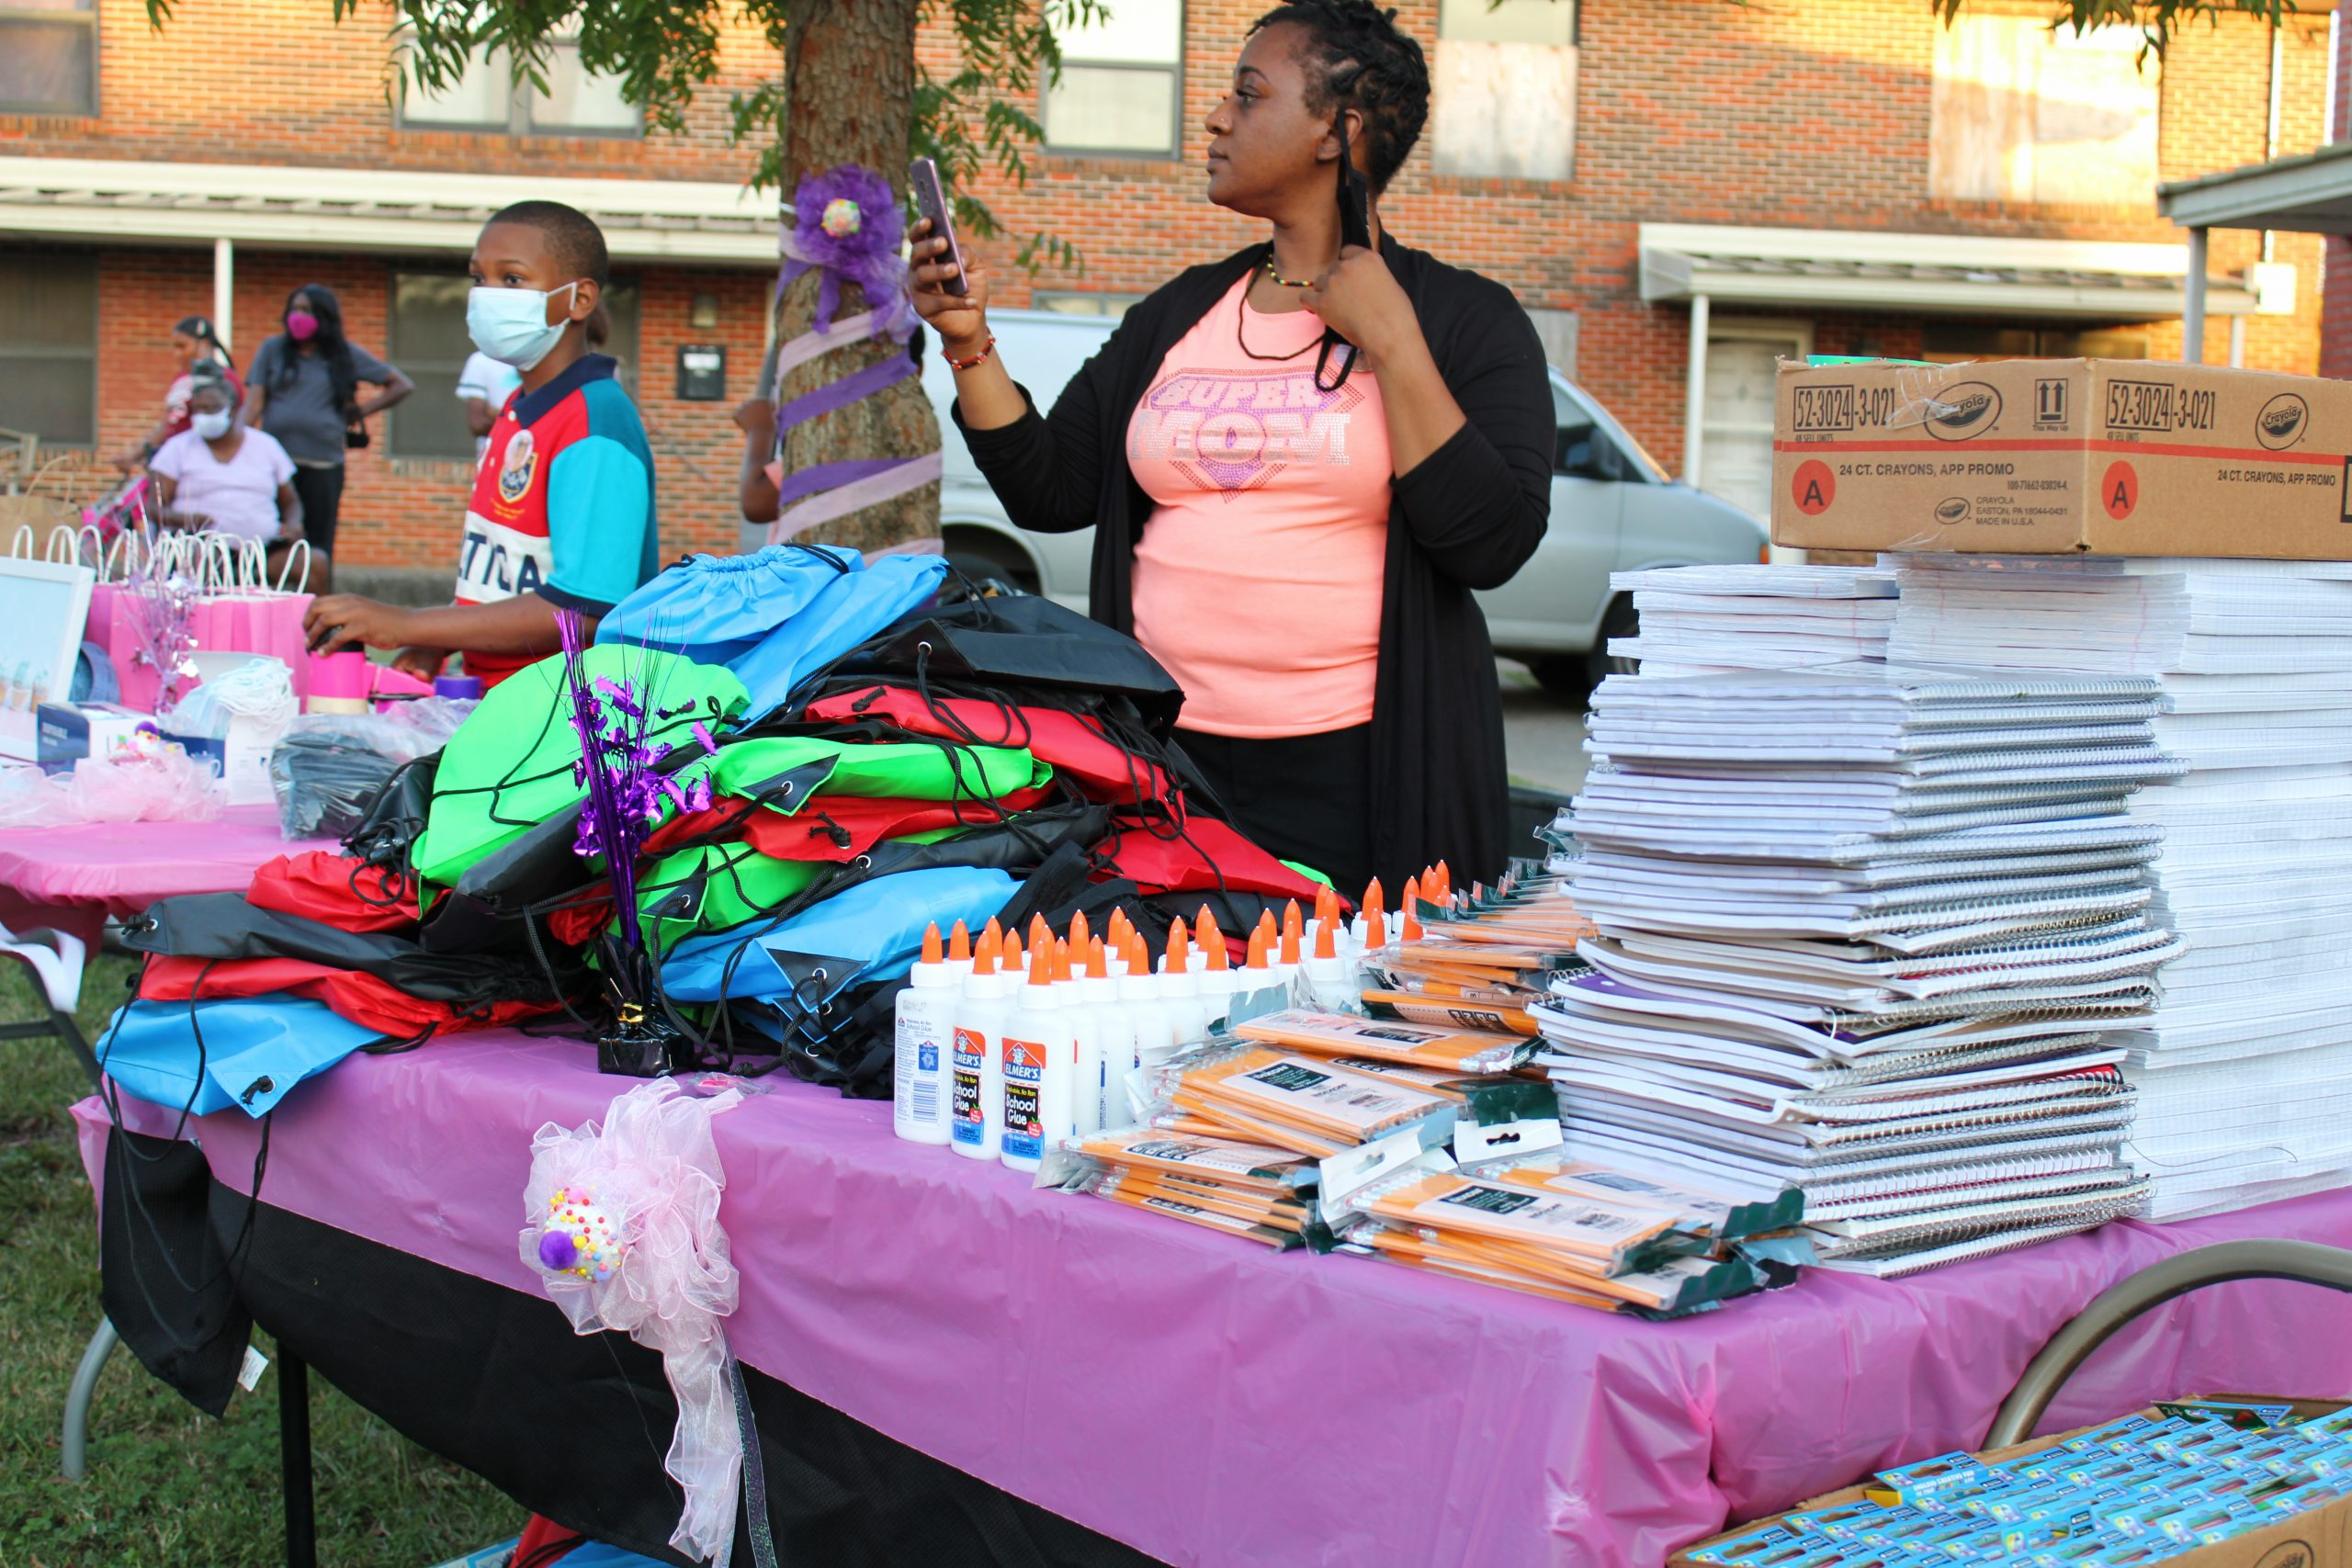 """During the first annual memorial tribute to Kamille """"Cupcake"""" McKinney, community organizers held a school supply giveaway for the Avondale community. (Sydney Melson, For The Birmingham Times)"""